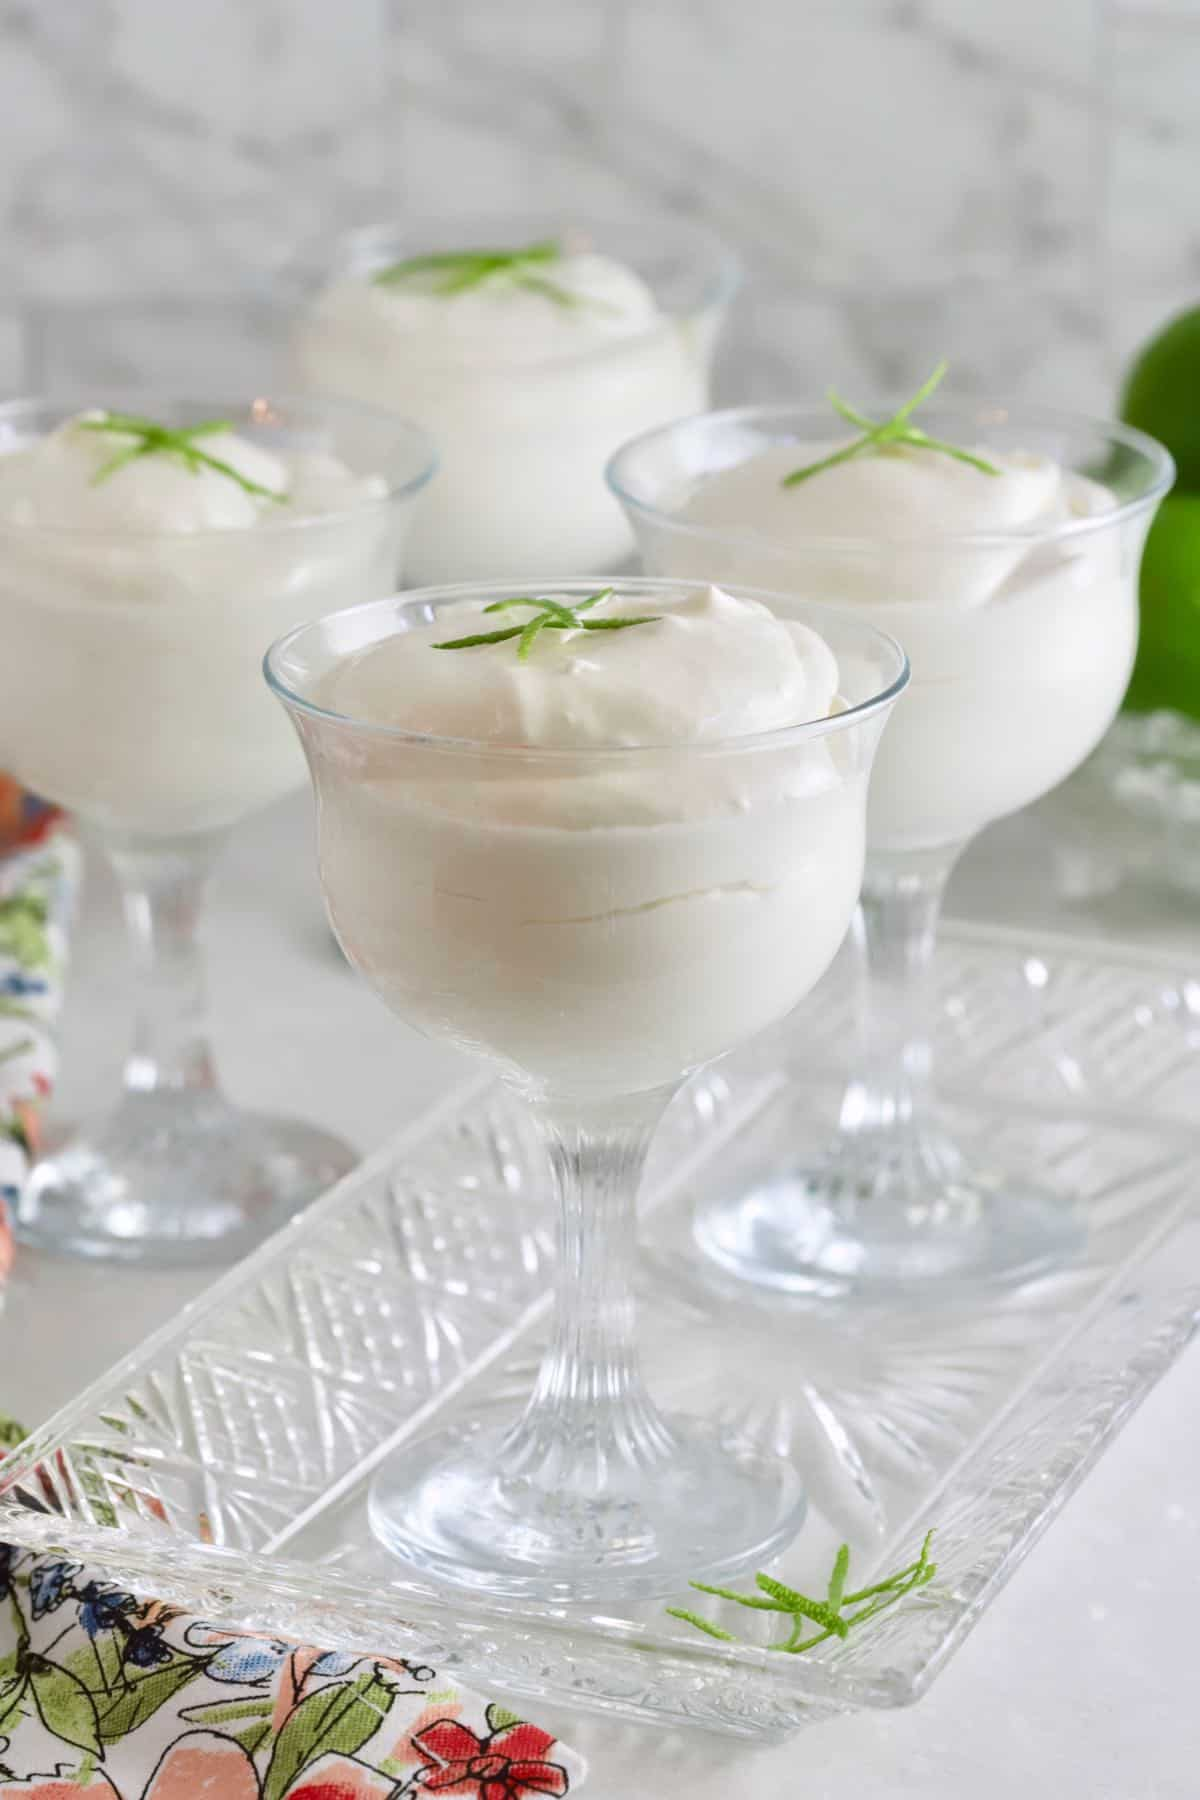 Key Lime Mouse in dessert glassed topped with strips of lime peel.